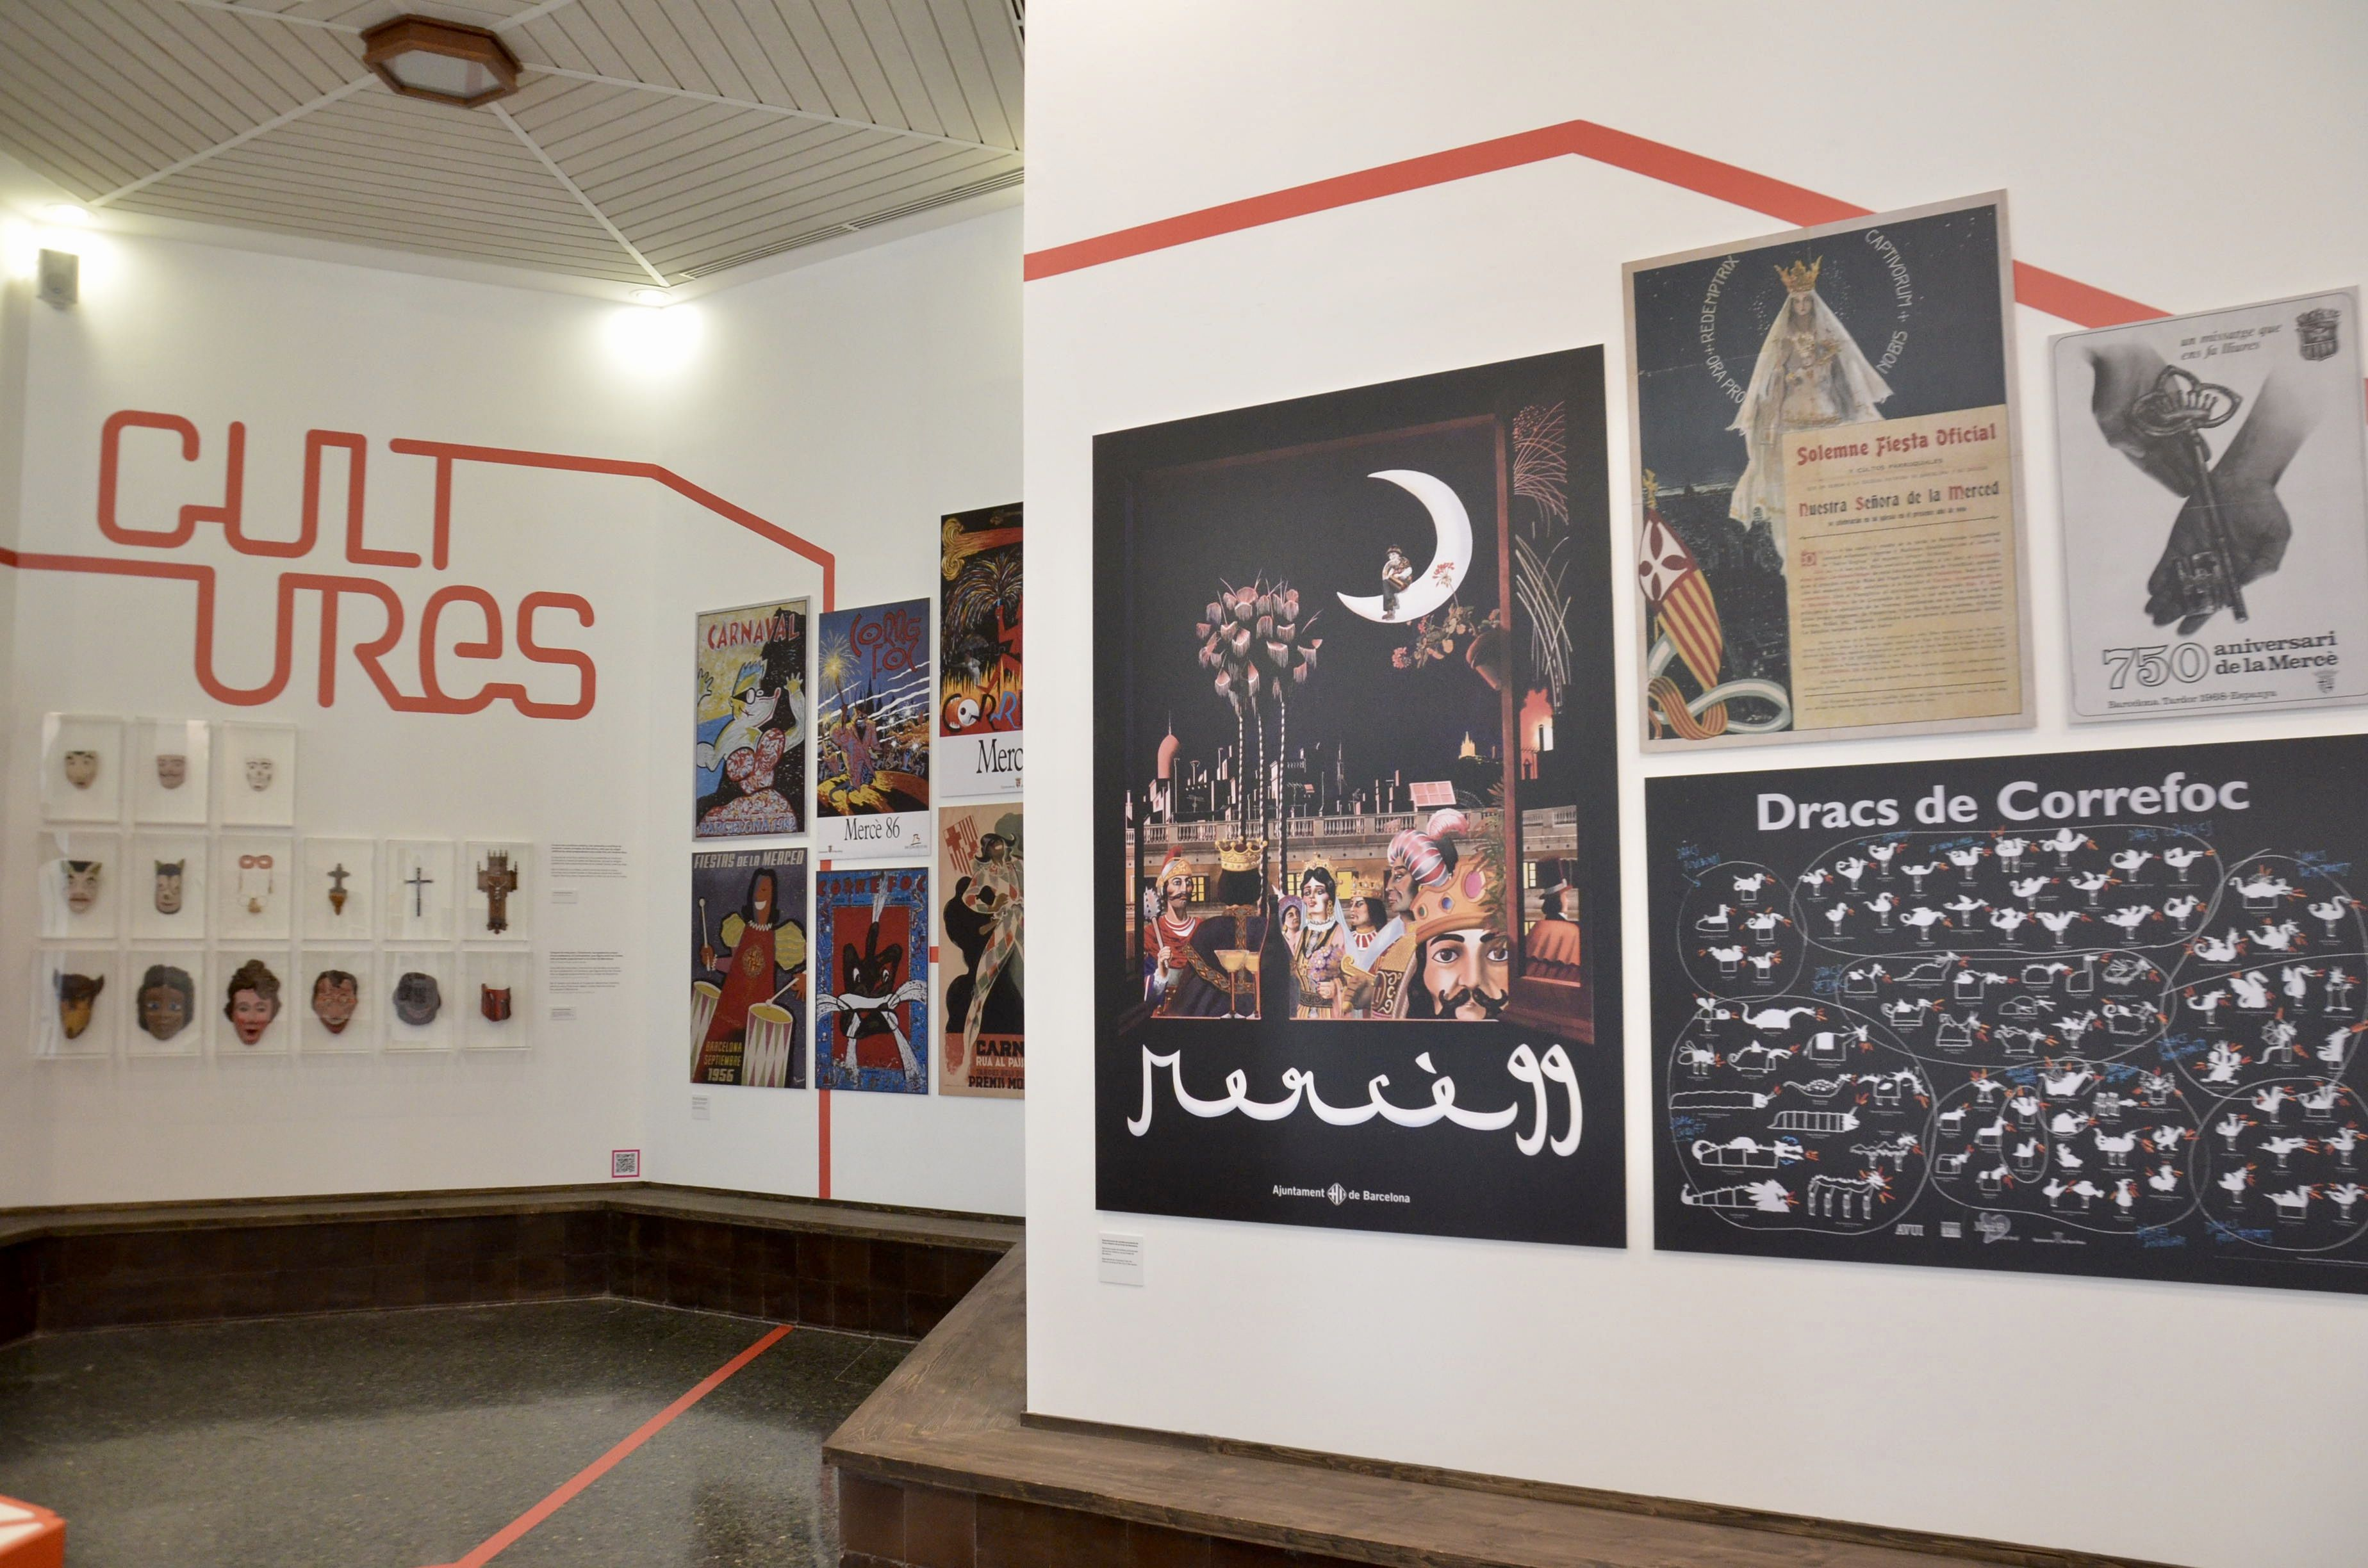 The Faces of Barcelona, Exhibition, Ethnology Museum of Barcelona